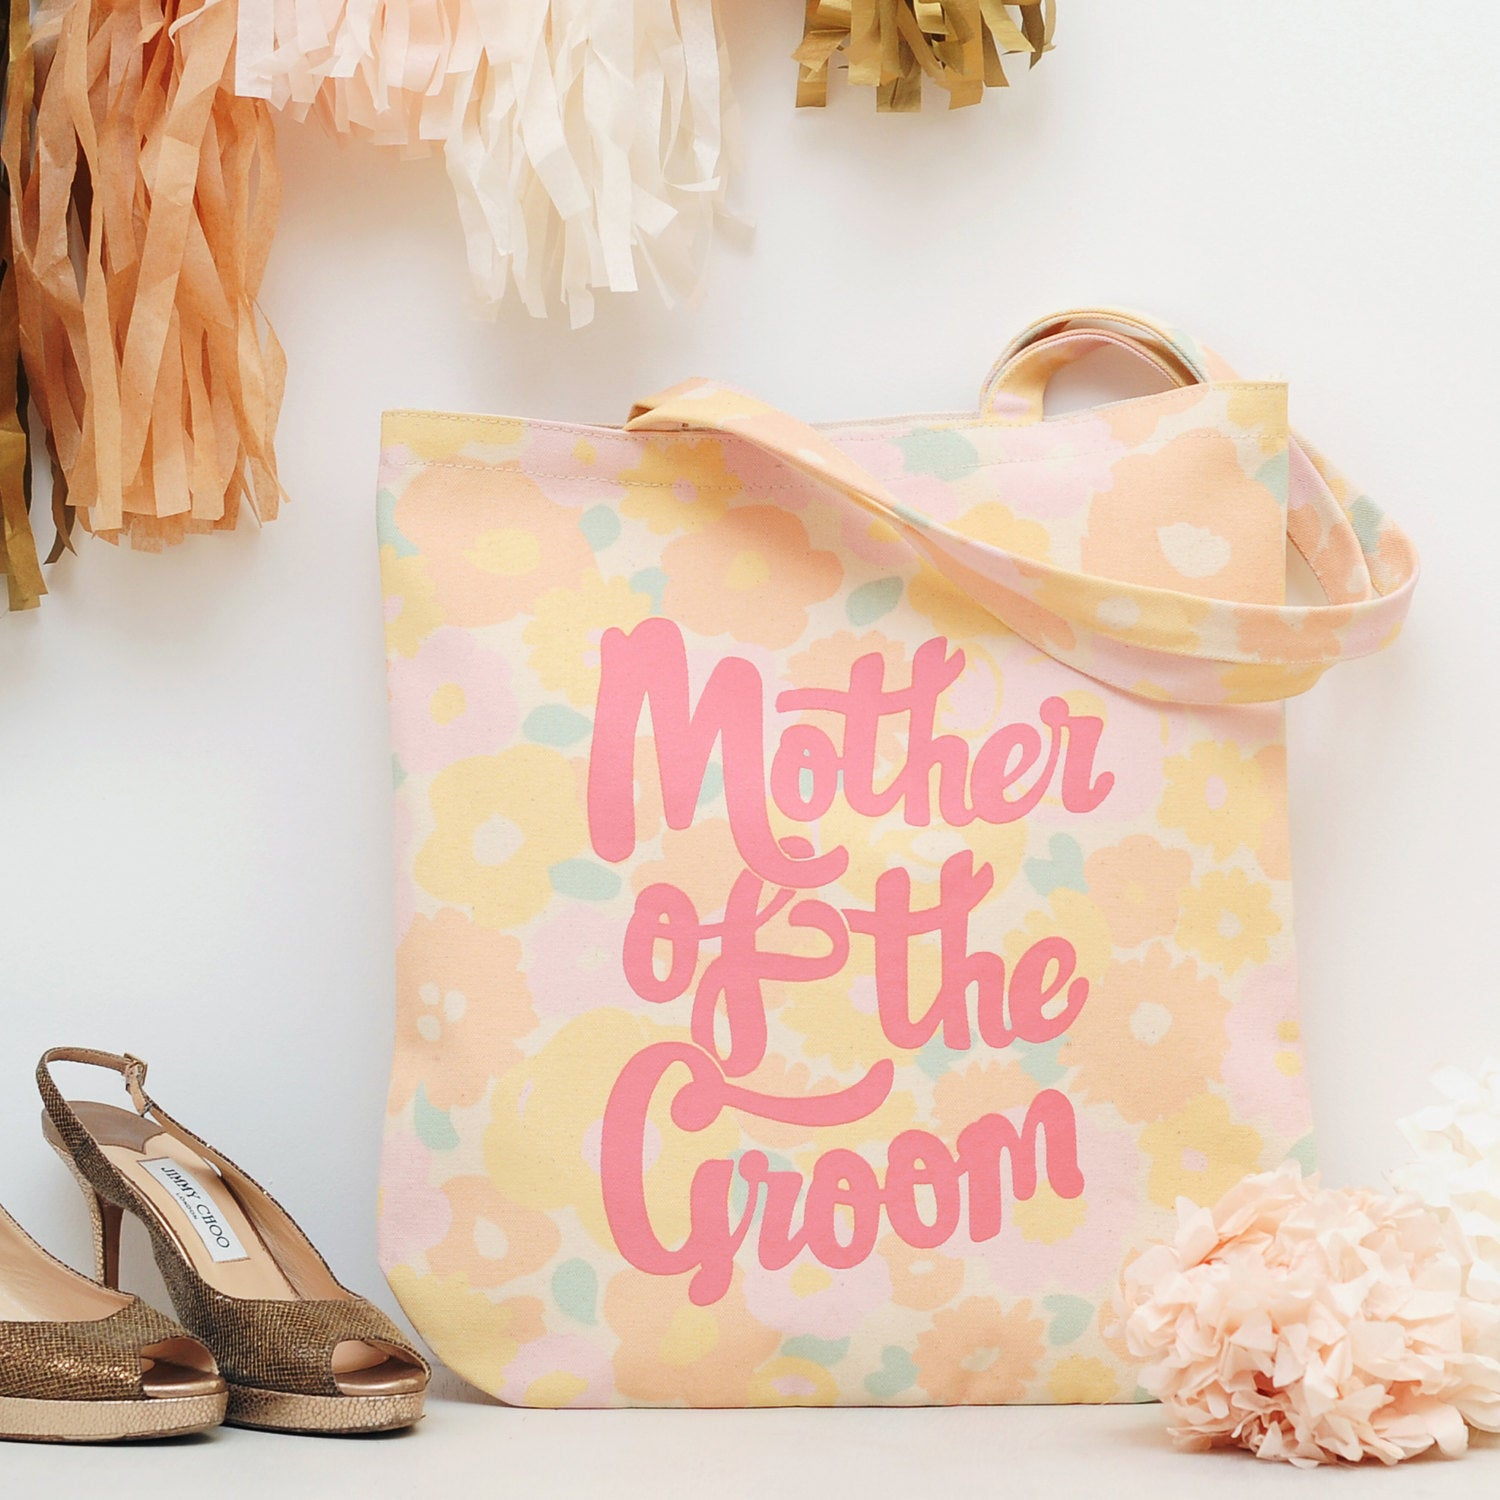 Mother Of The Groom Floral Tote Bag - Gift For Mum Shoulder Wedding Canvas Bachelorette Party